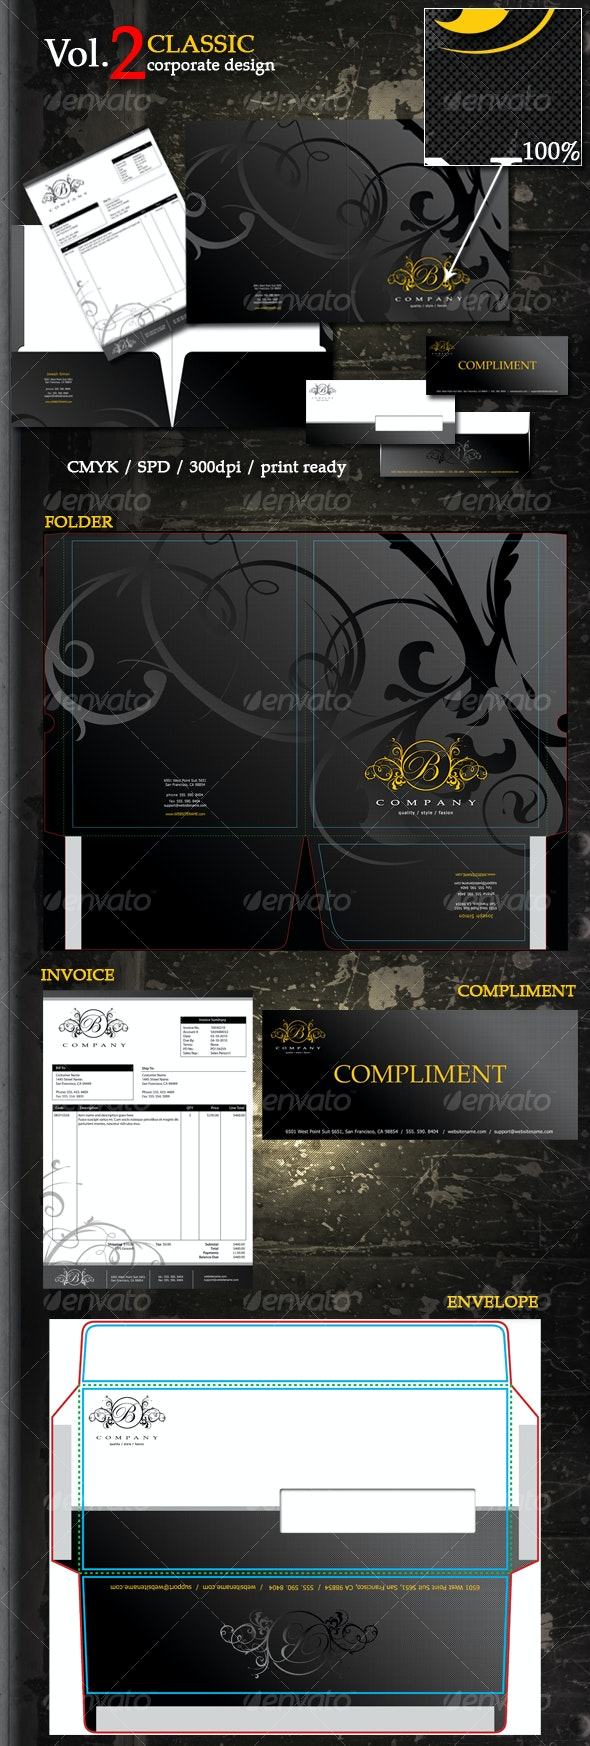 Small Corp Design Vol.2 - Stationery Print Templates